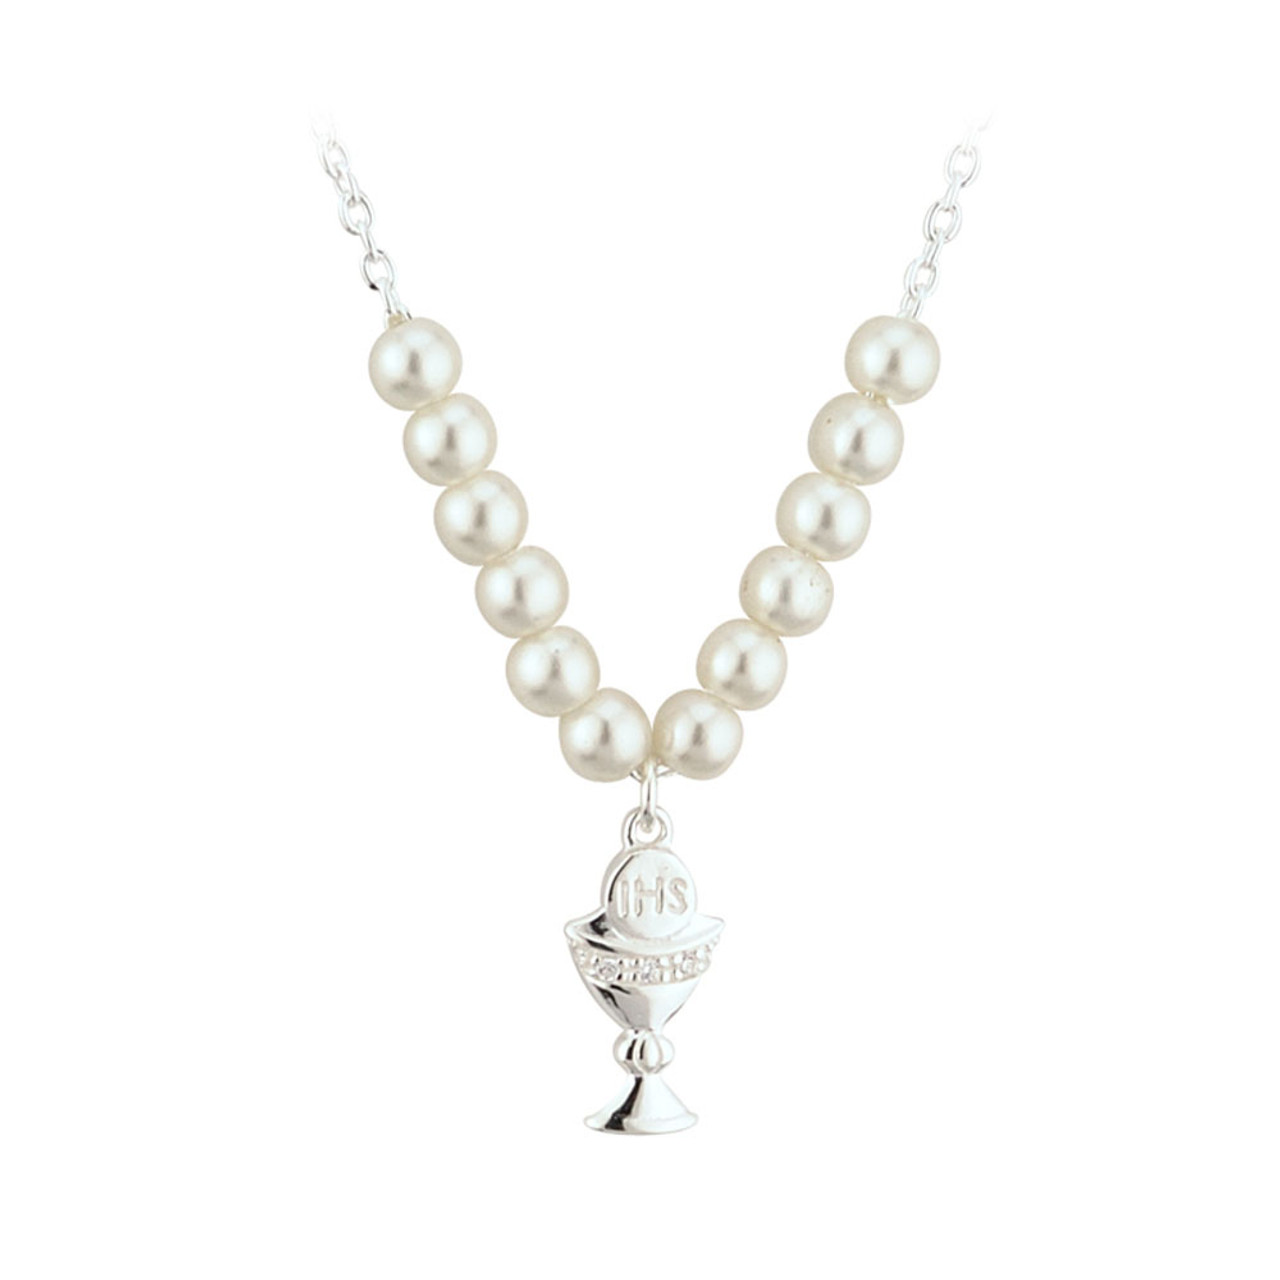 Silver Plated Chalice Pendant and Pearls Necklace